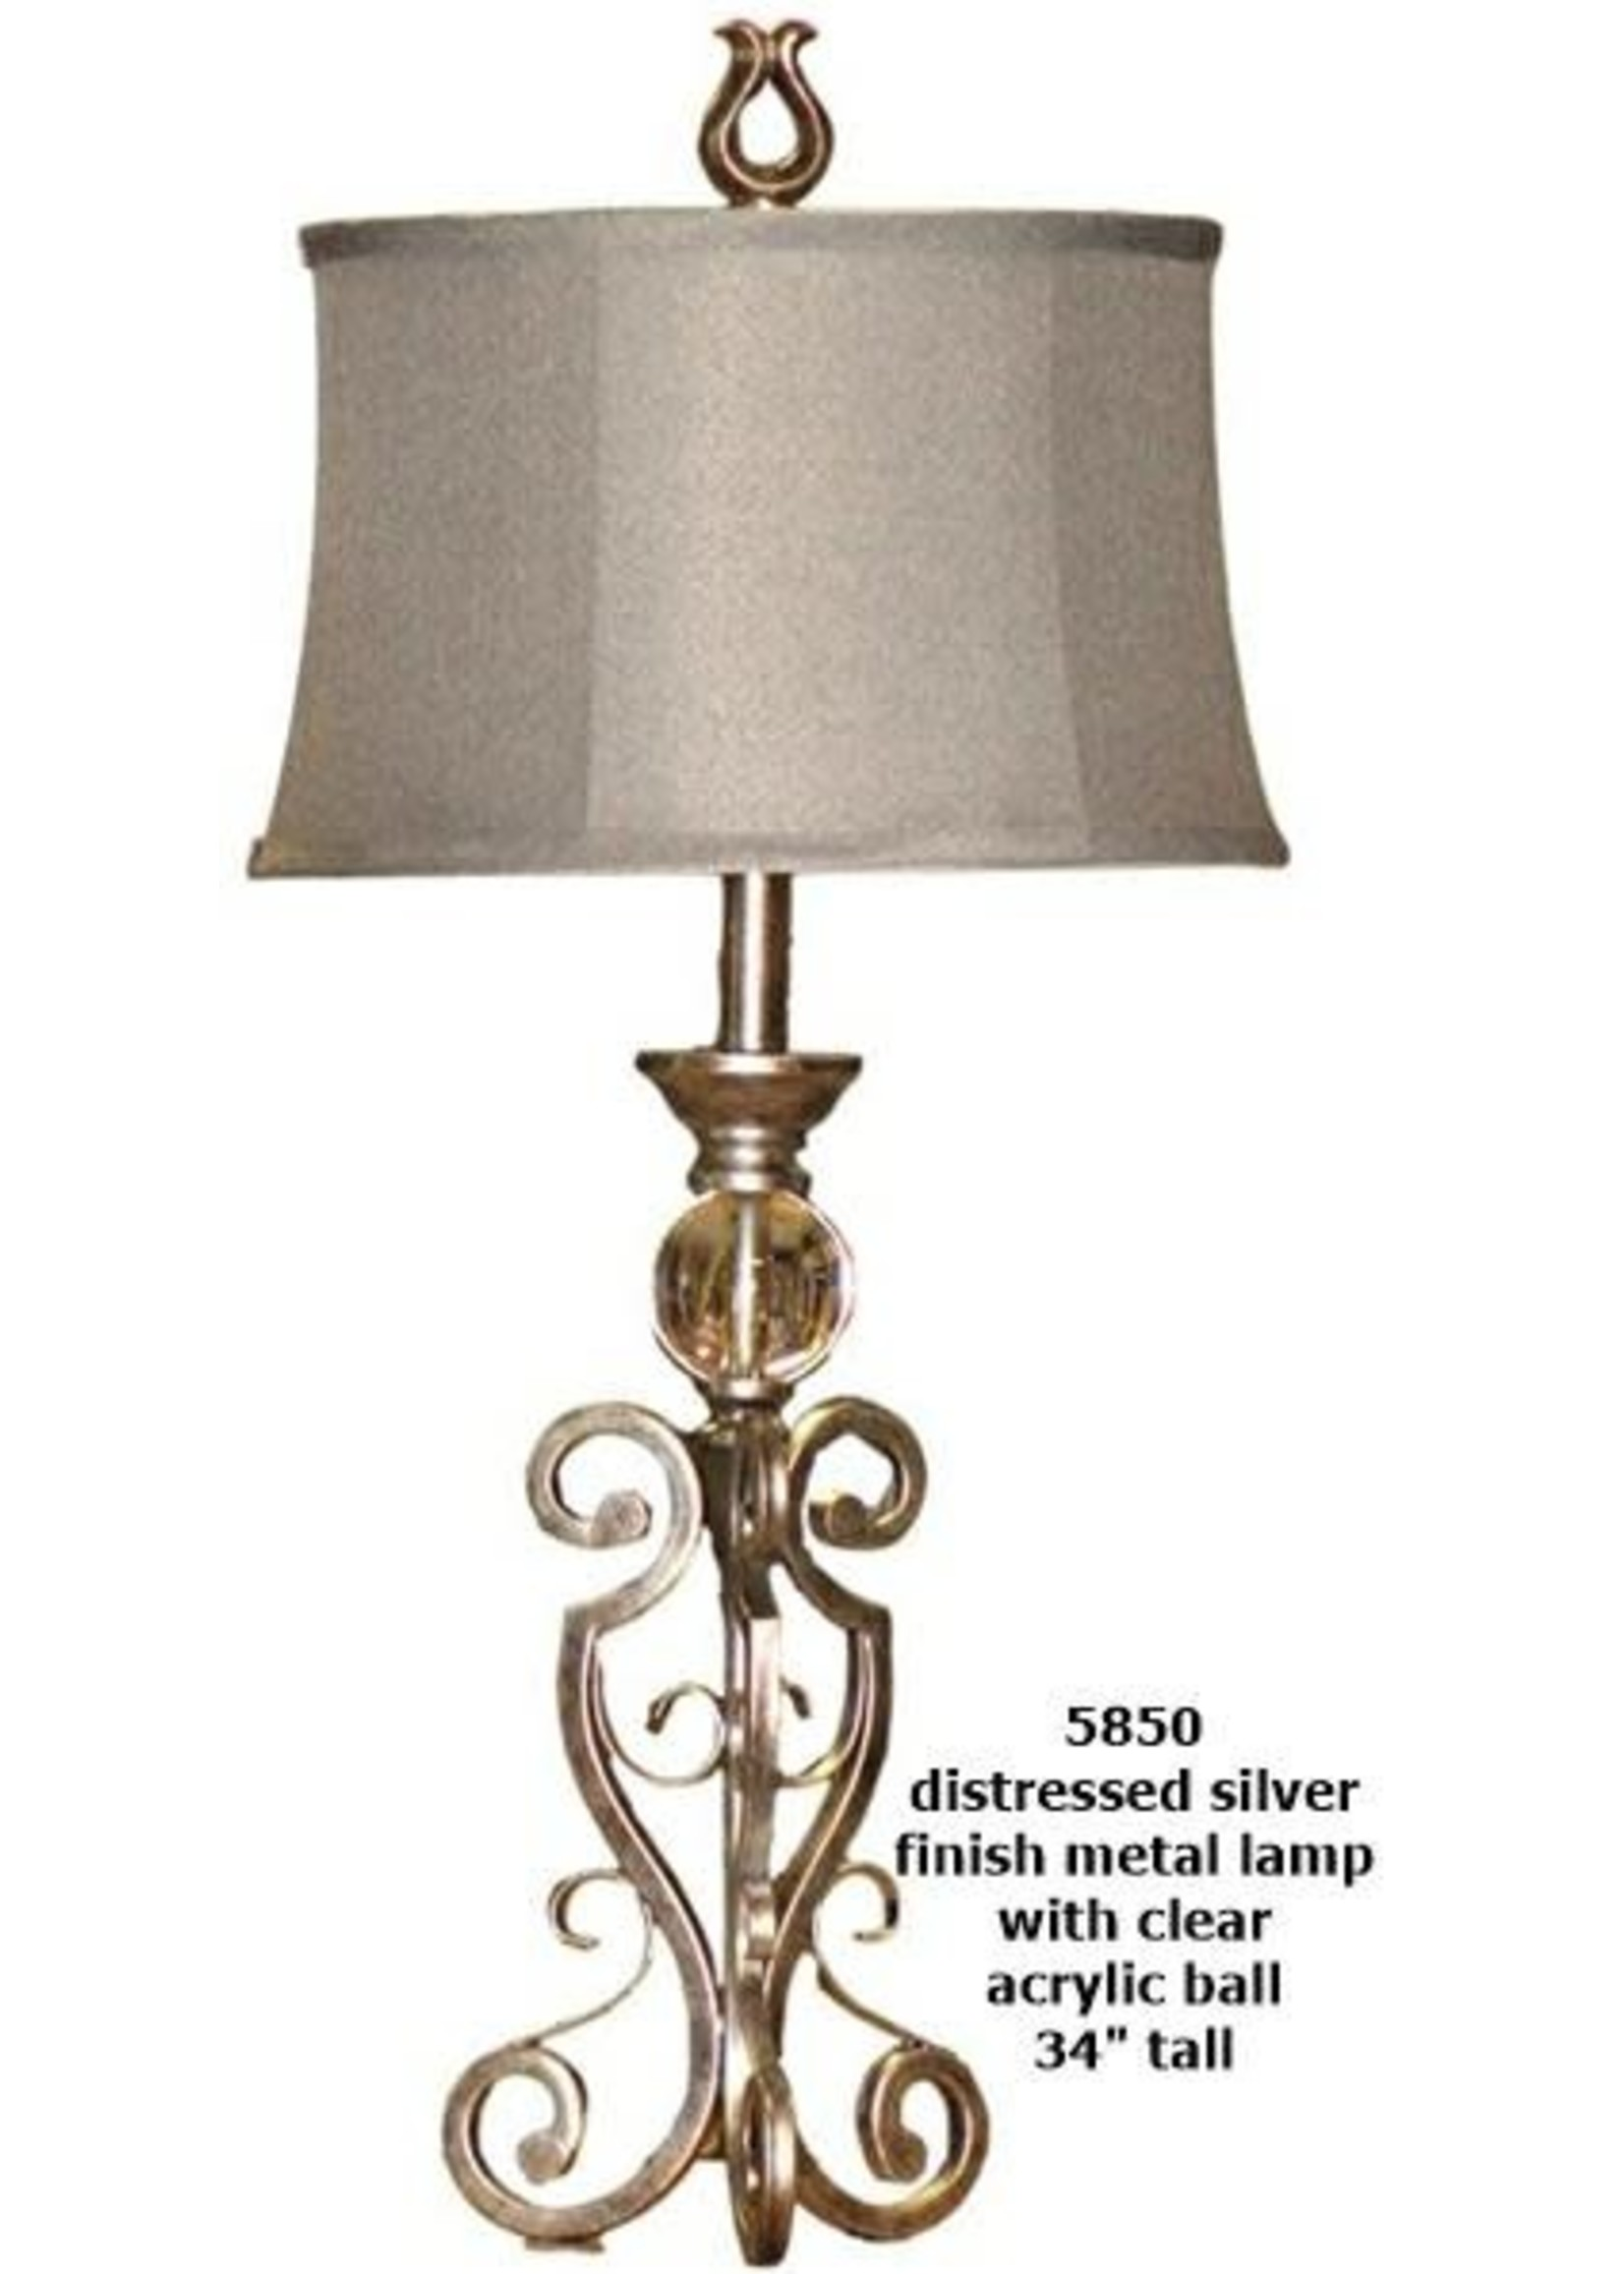 H&H LAMP TABLE LAMP WITH CLEAR BALL IN DISTRESSED SILVER METAL